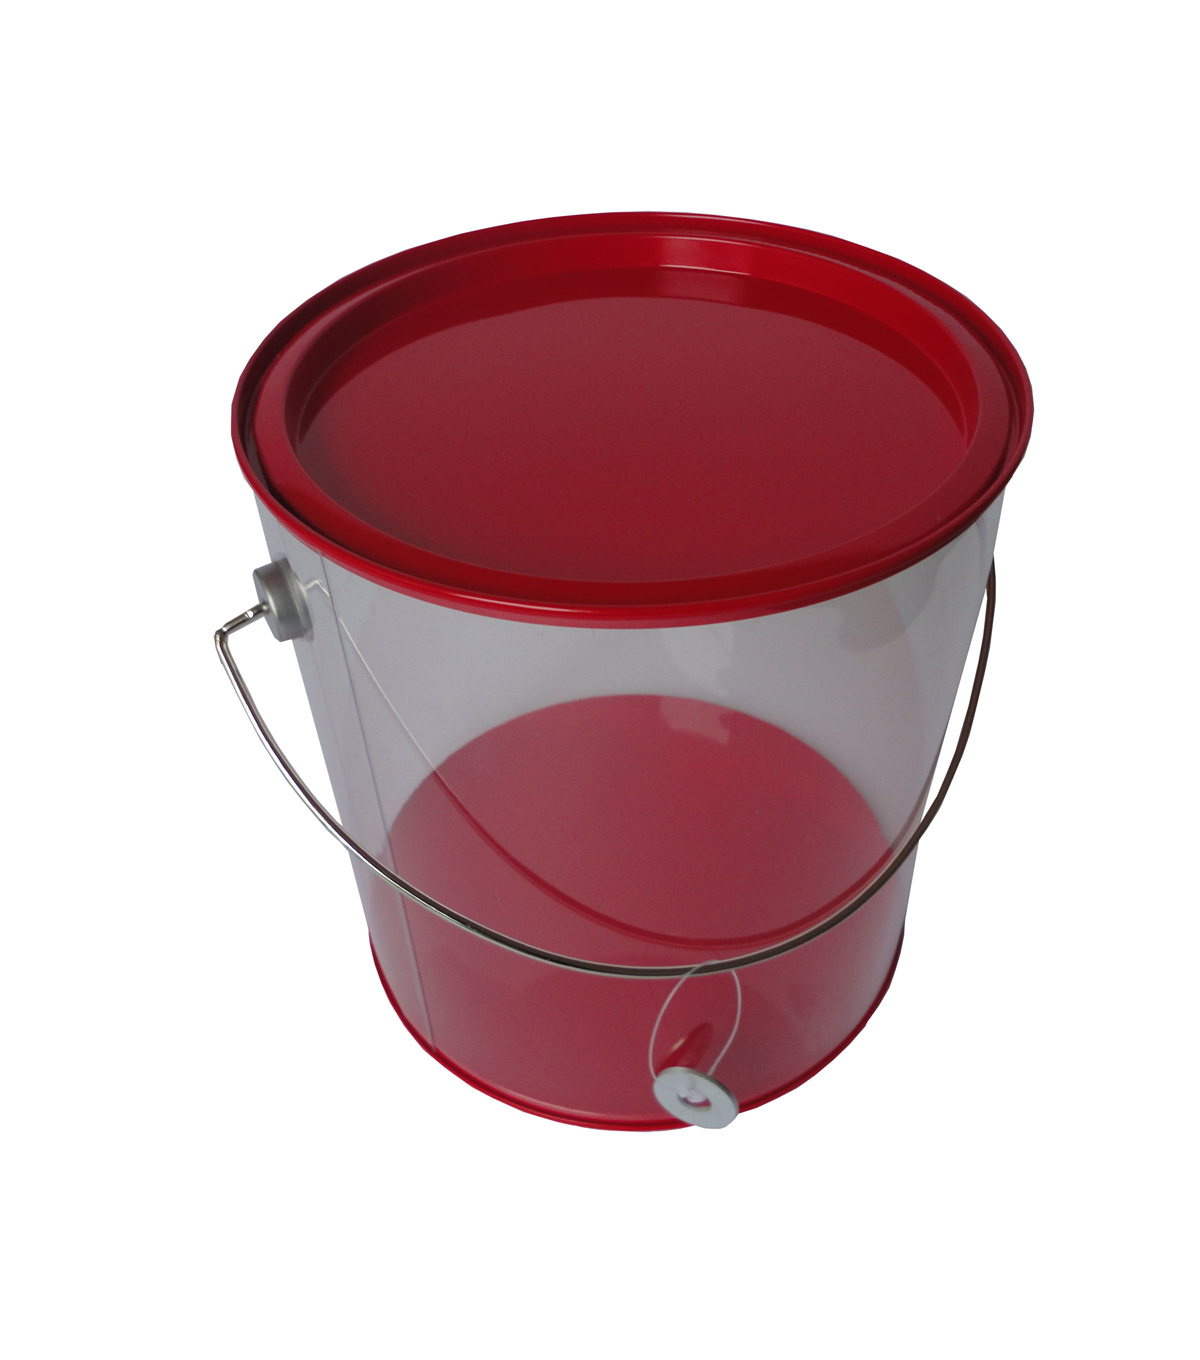 LG PLASTIC PAINT CAN TIN LID RED